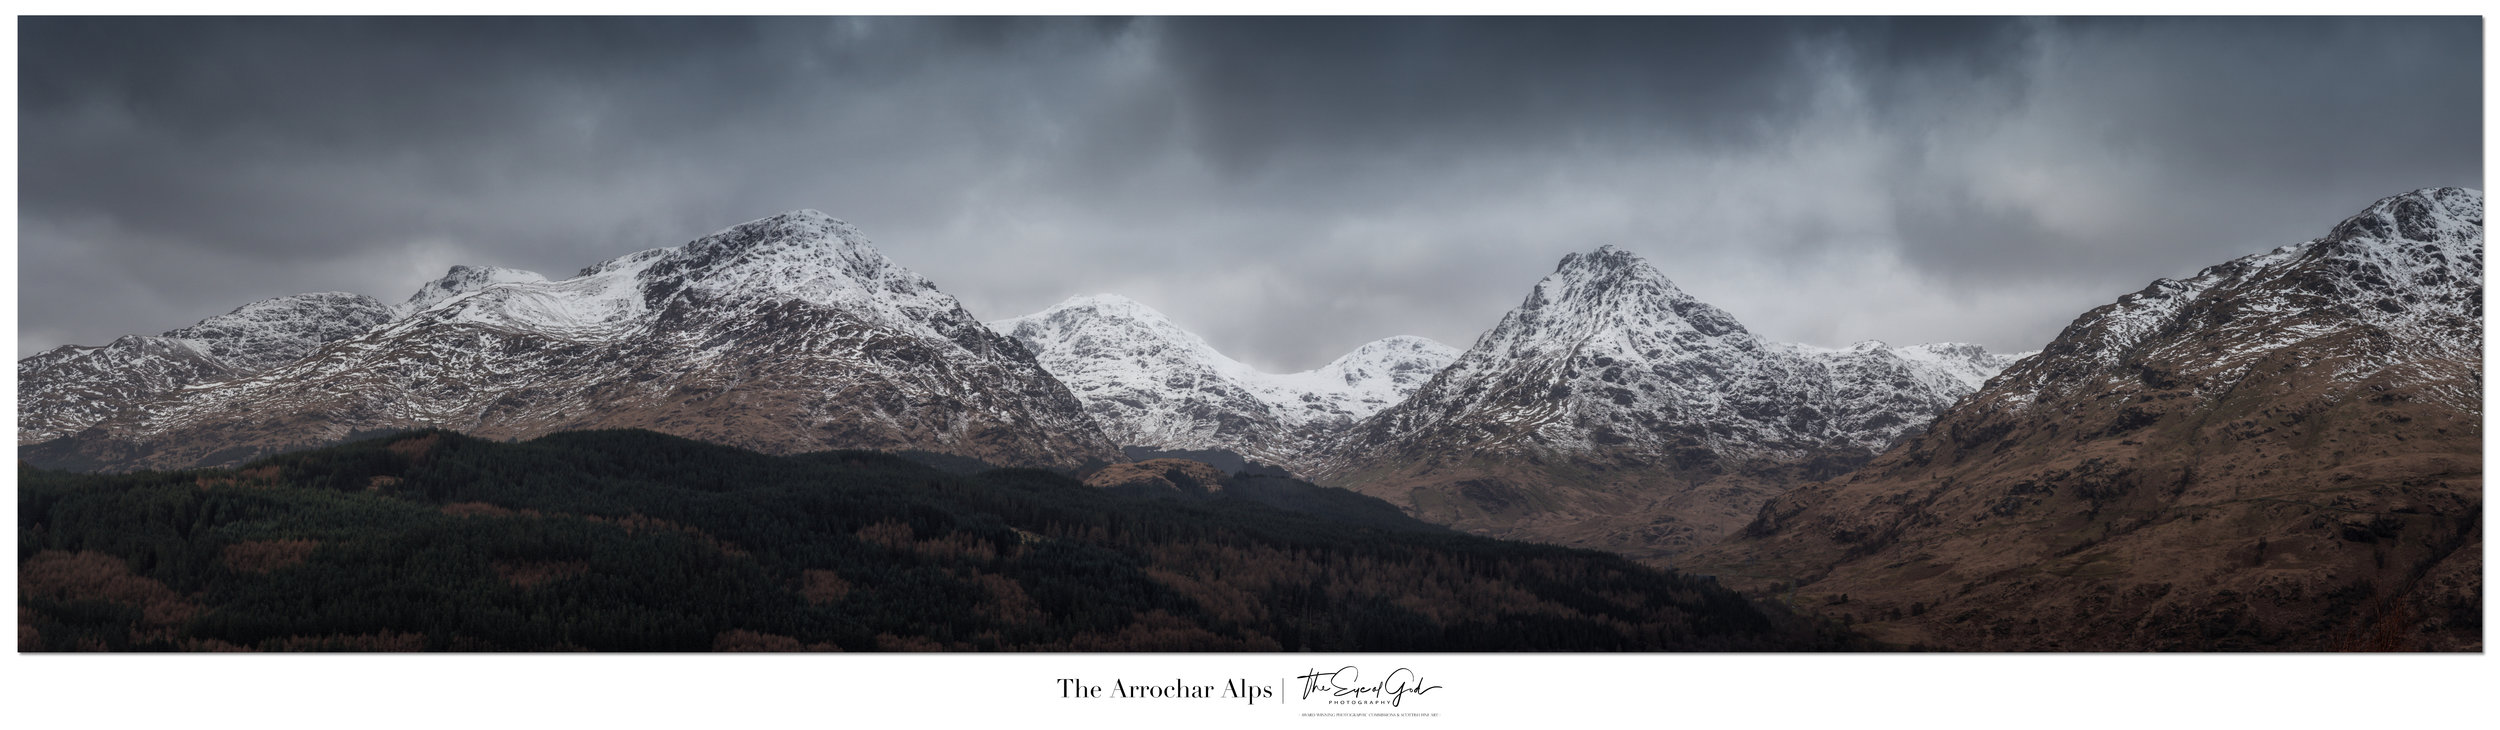 Arrochar_Alps_from_Inversnaid_Rob_Roy_Viewpoint_Scott_Wanstall